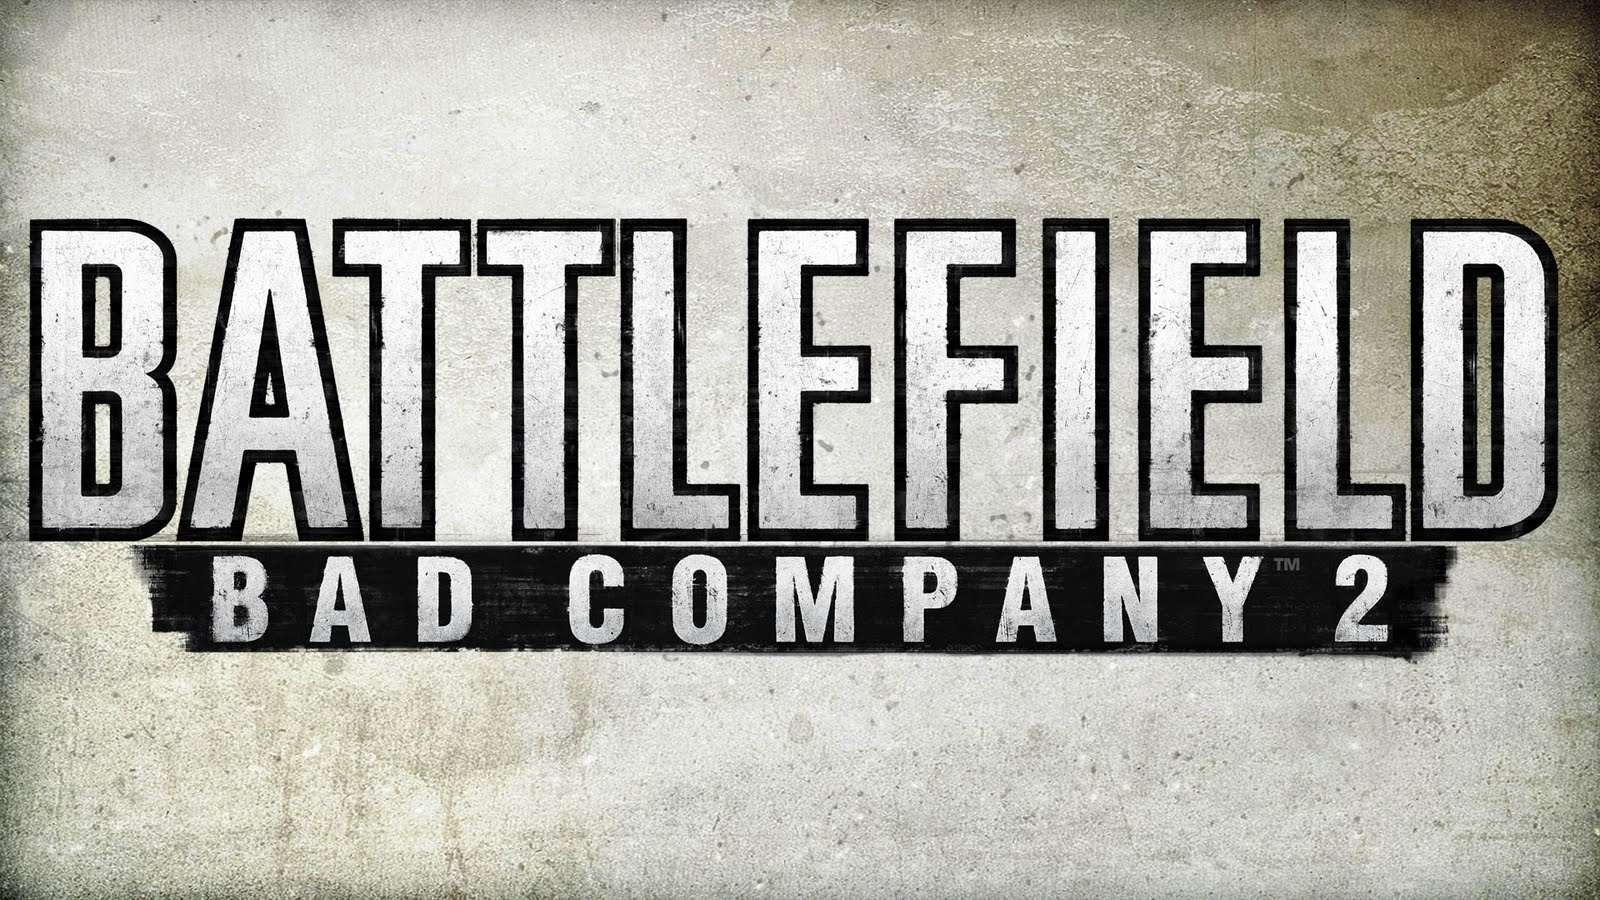 Battlefield bad company wallpaper - photo#24